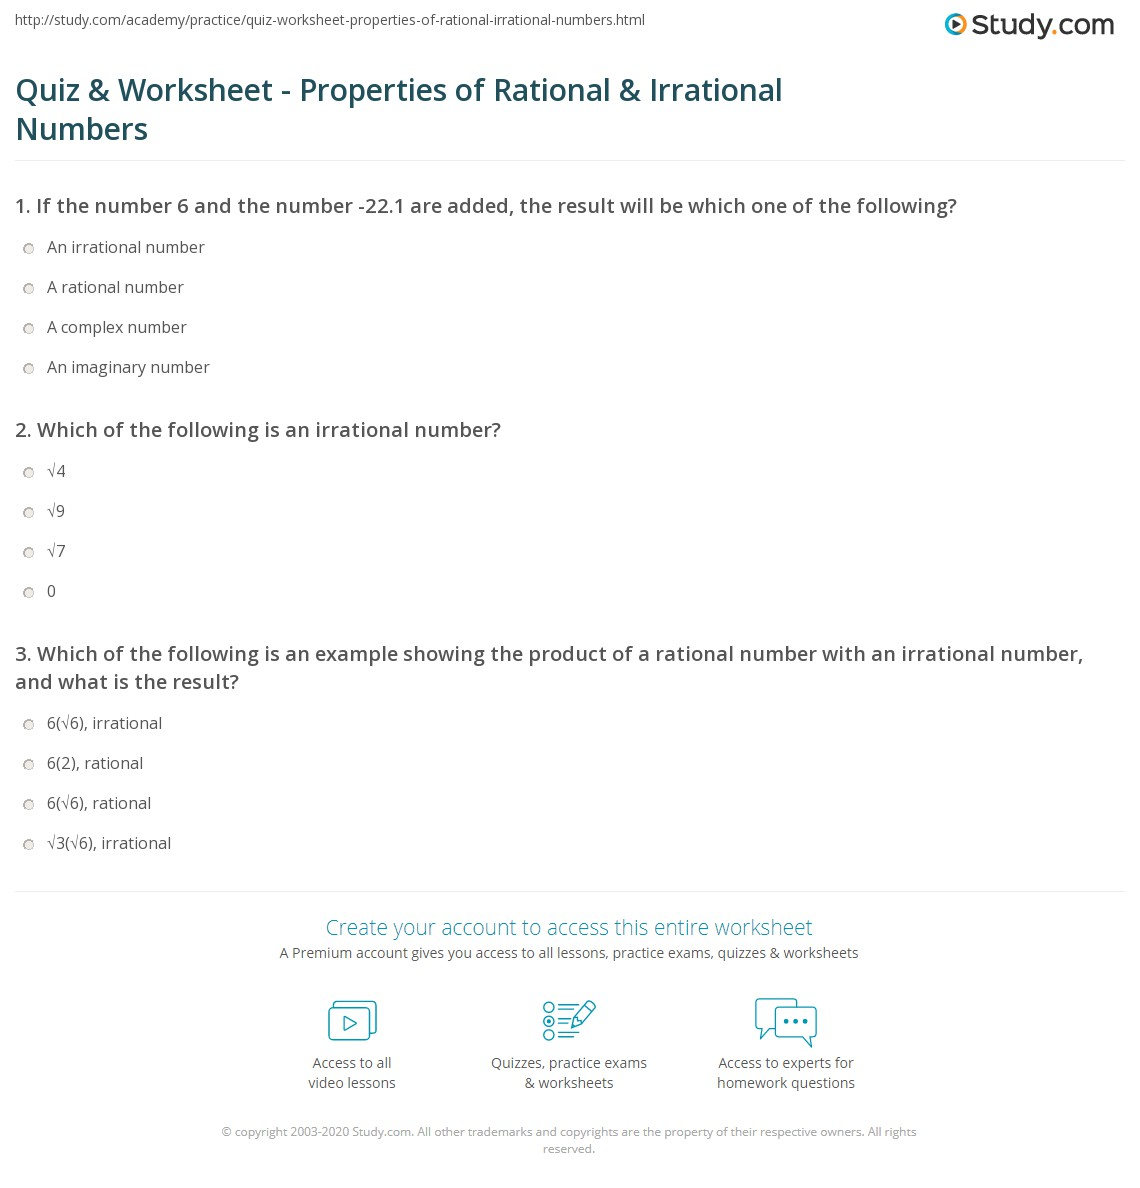 print properties of rational irrational numbers worksheet - Rational And Irrational Numbers Worksheet